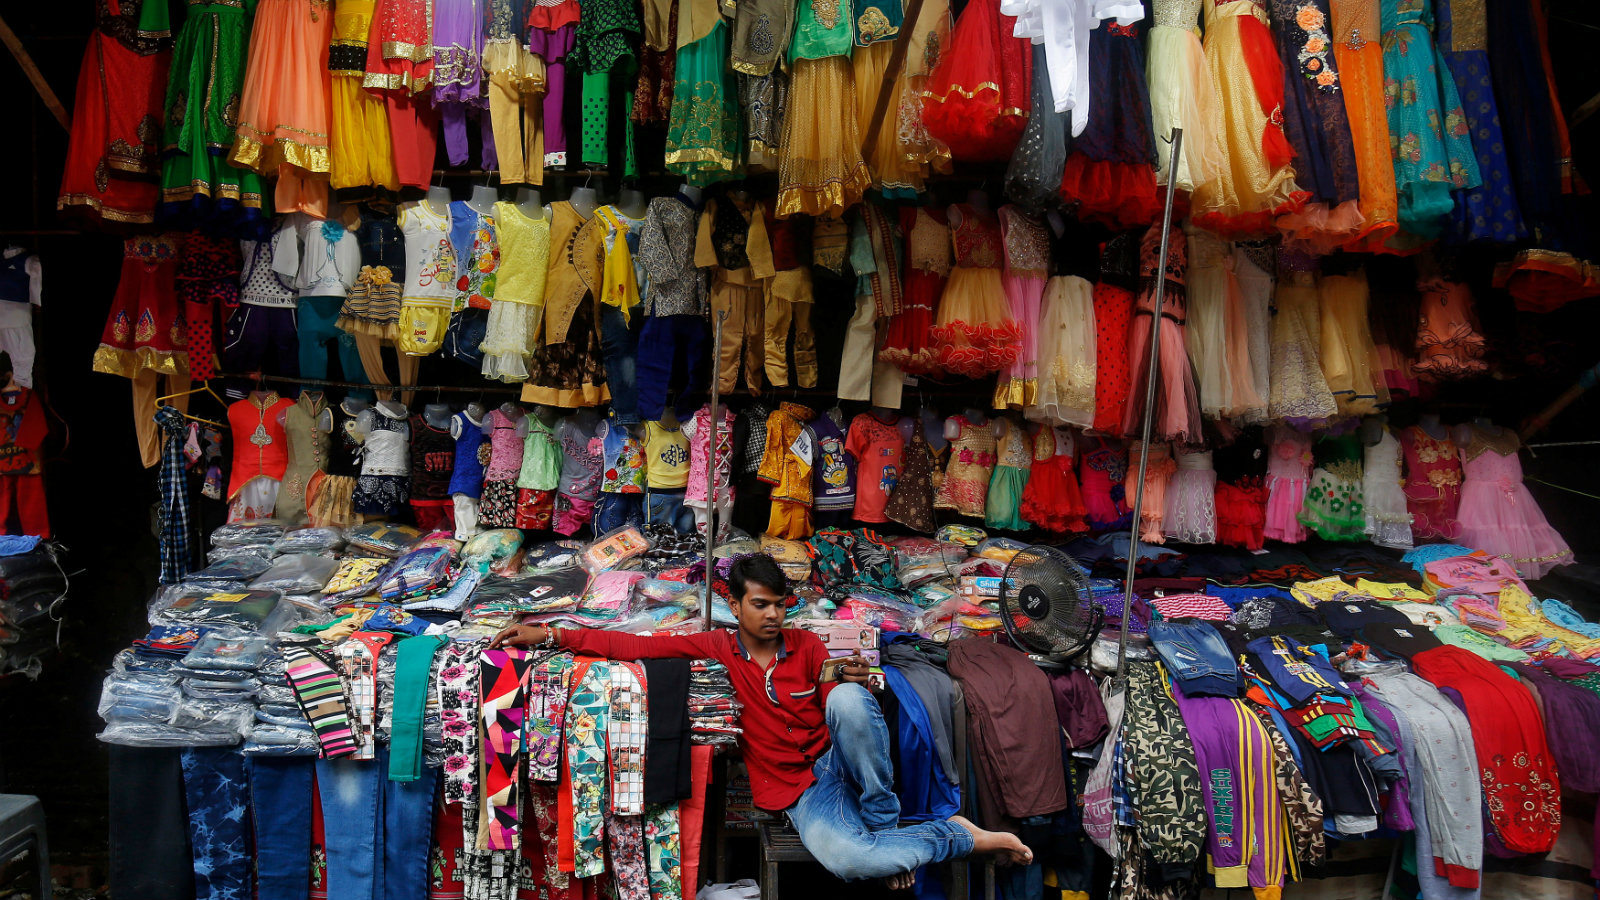 A costume vendor checks his mobile phone as he waits for customers in Rishikesh, India, August 10, 2017.